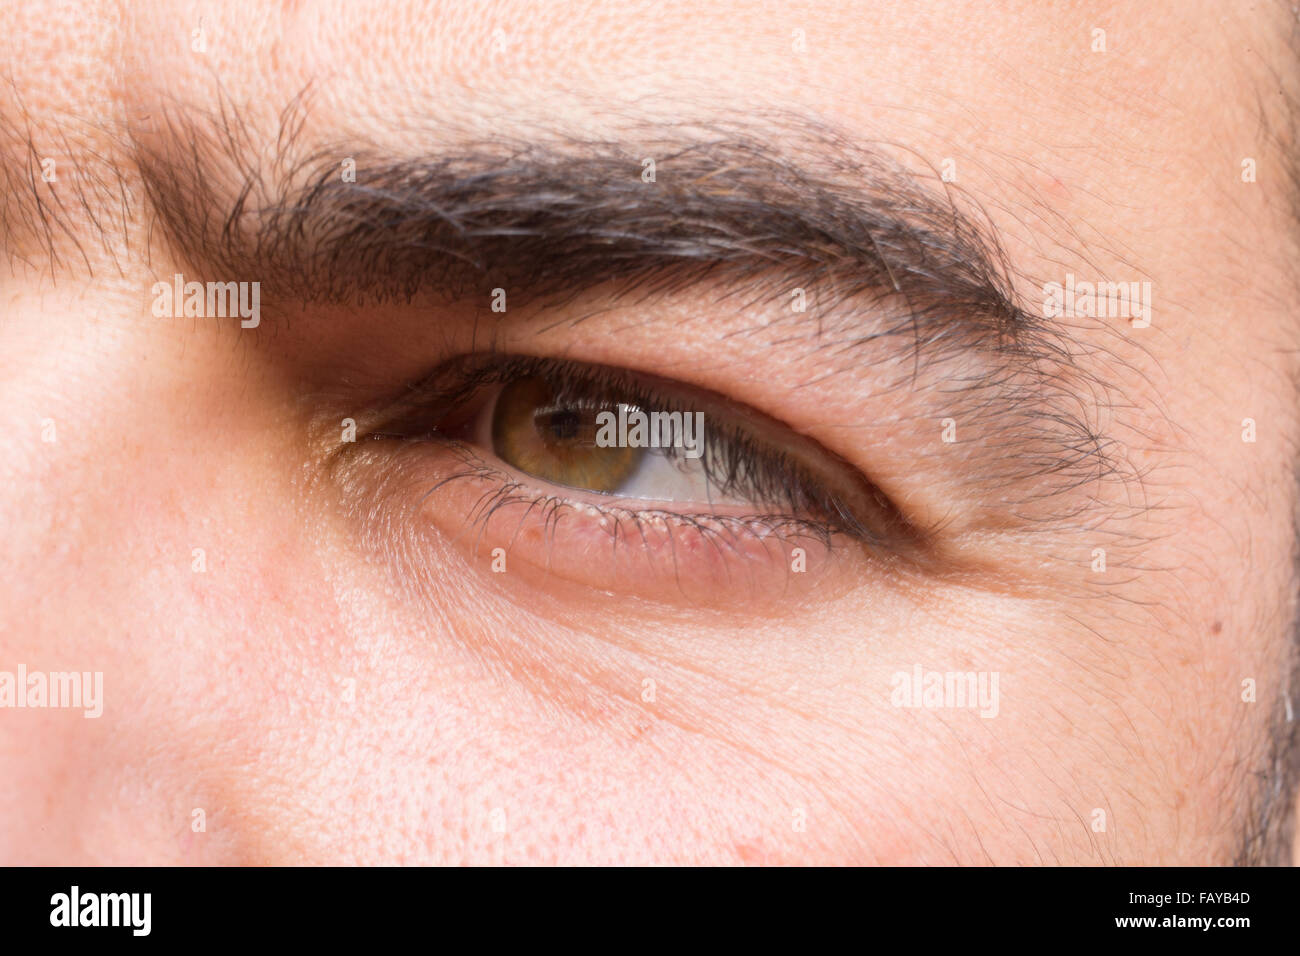 Sight - Stock Image